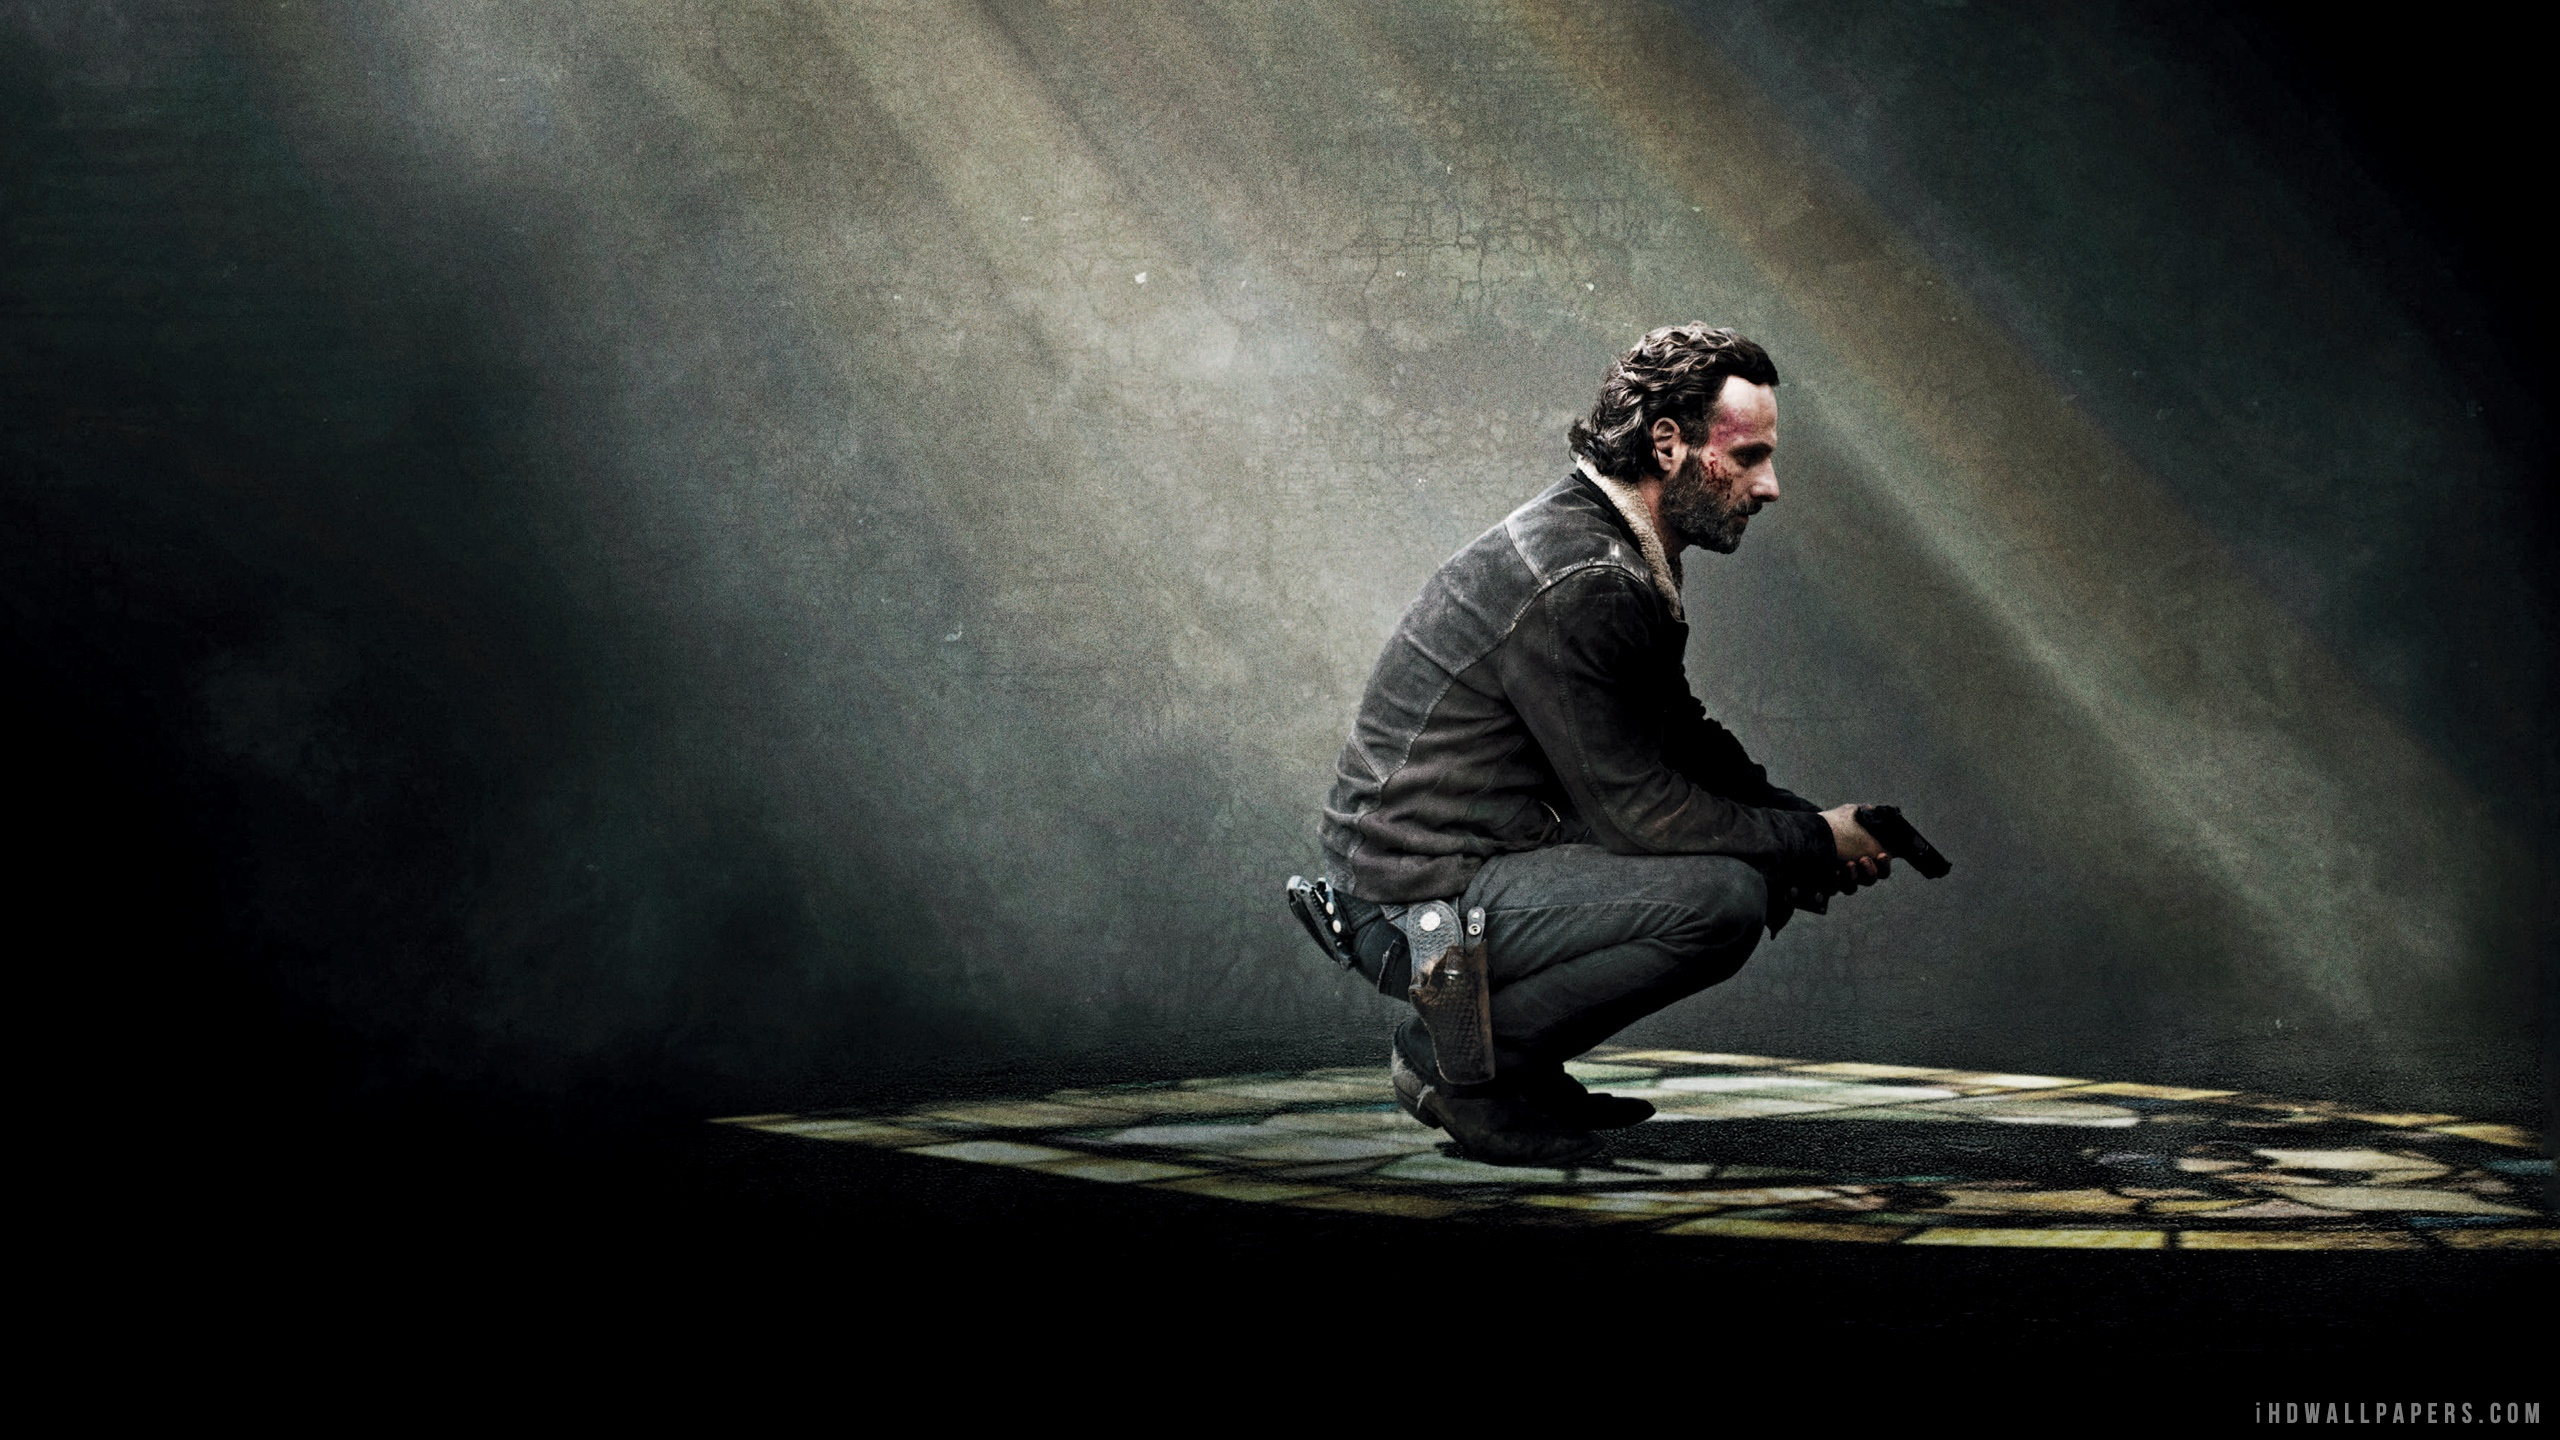 The Walking Dead Wallpapers 1920x1080 Group (92+)